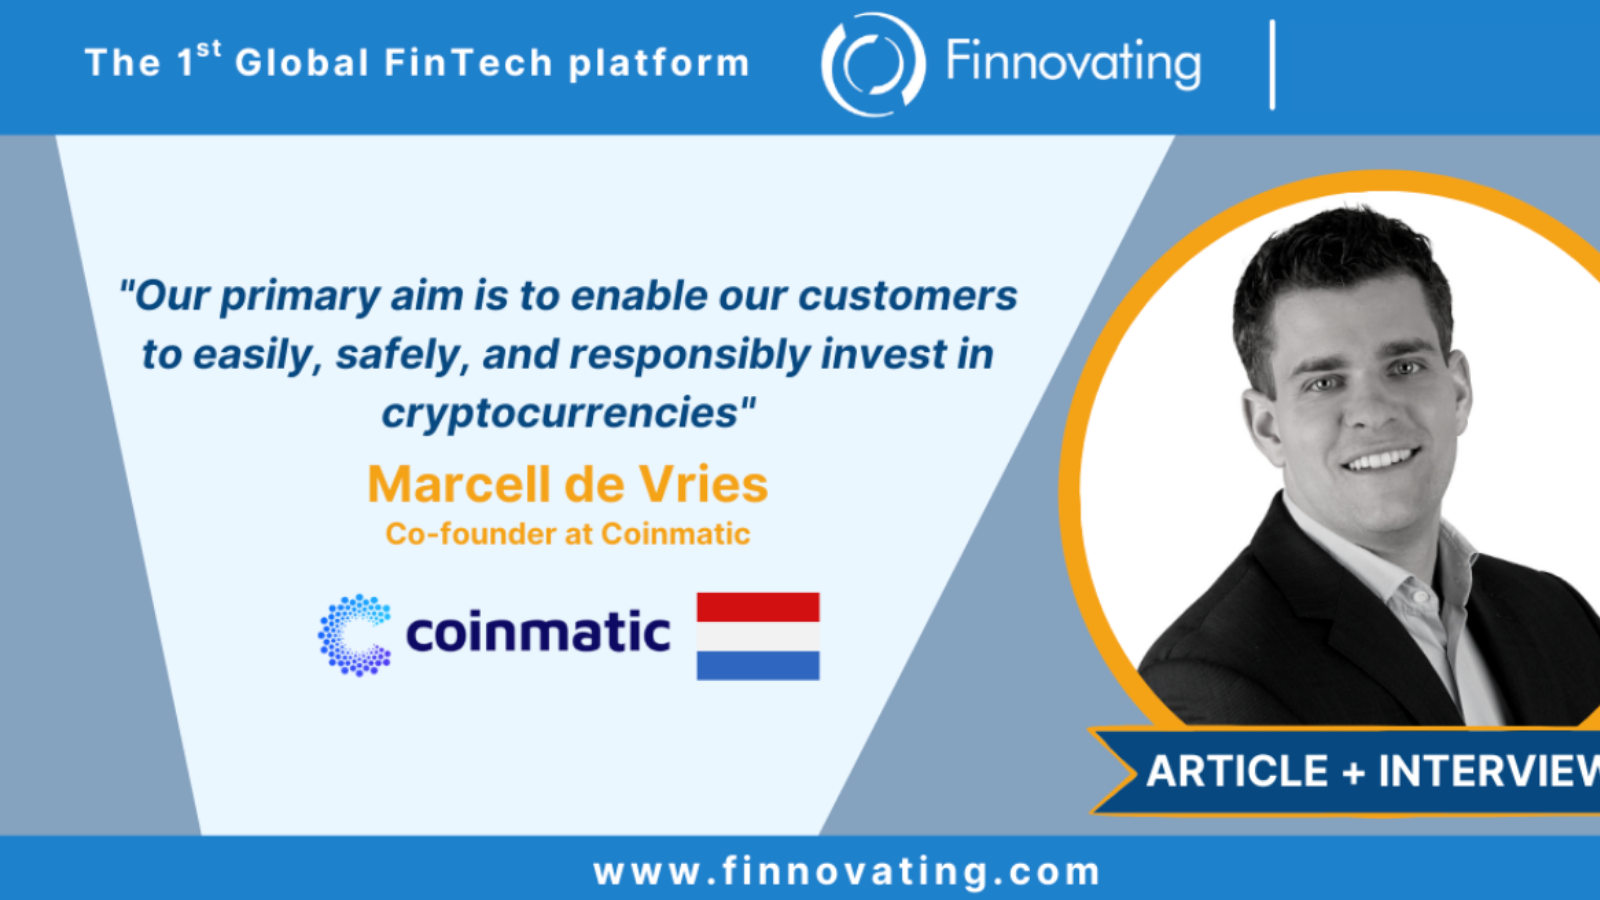 Finnovating Coinmatic cryptocurrency banks